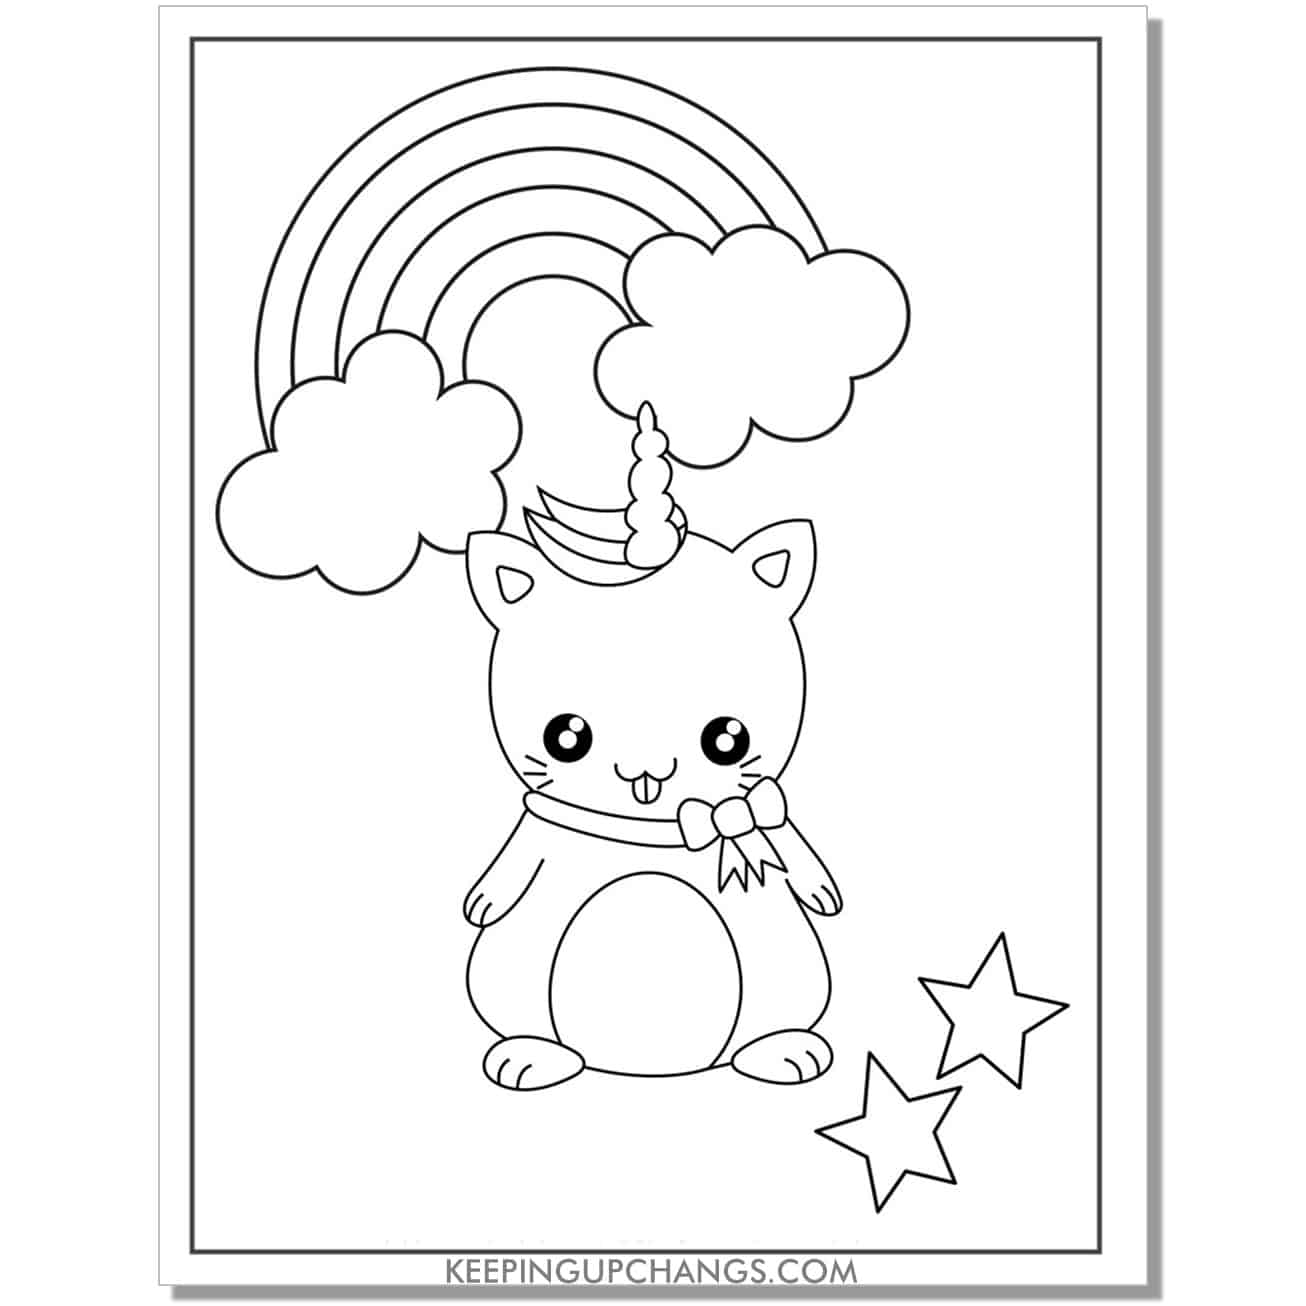 kawaii cat unicorn with stars and rainbow coloring page.